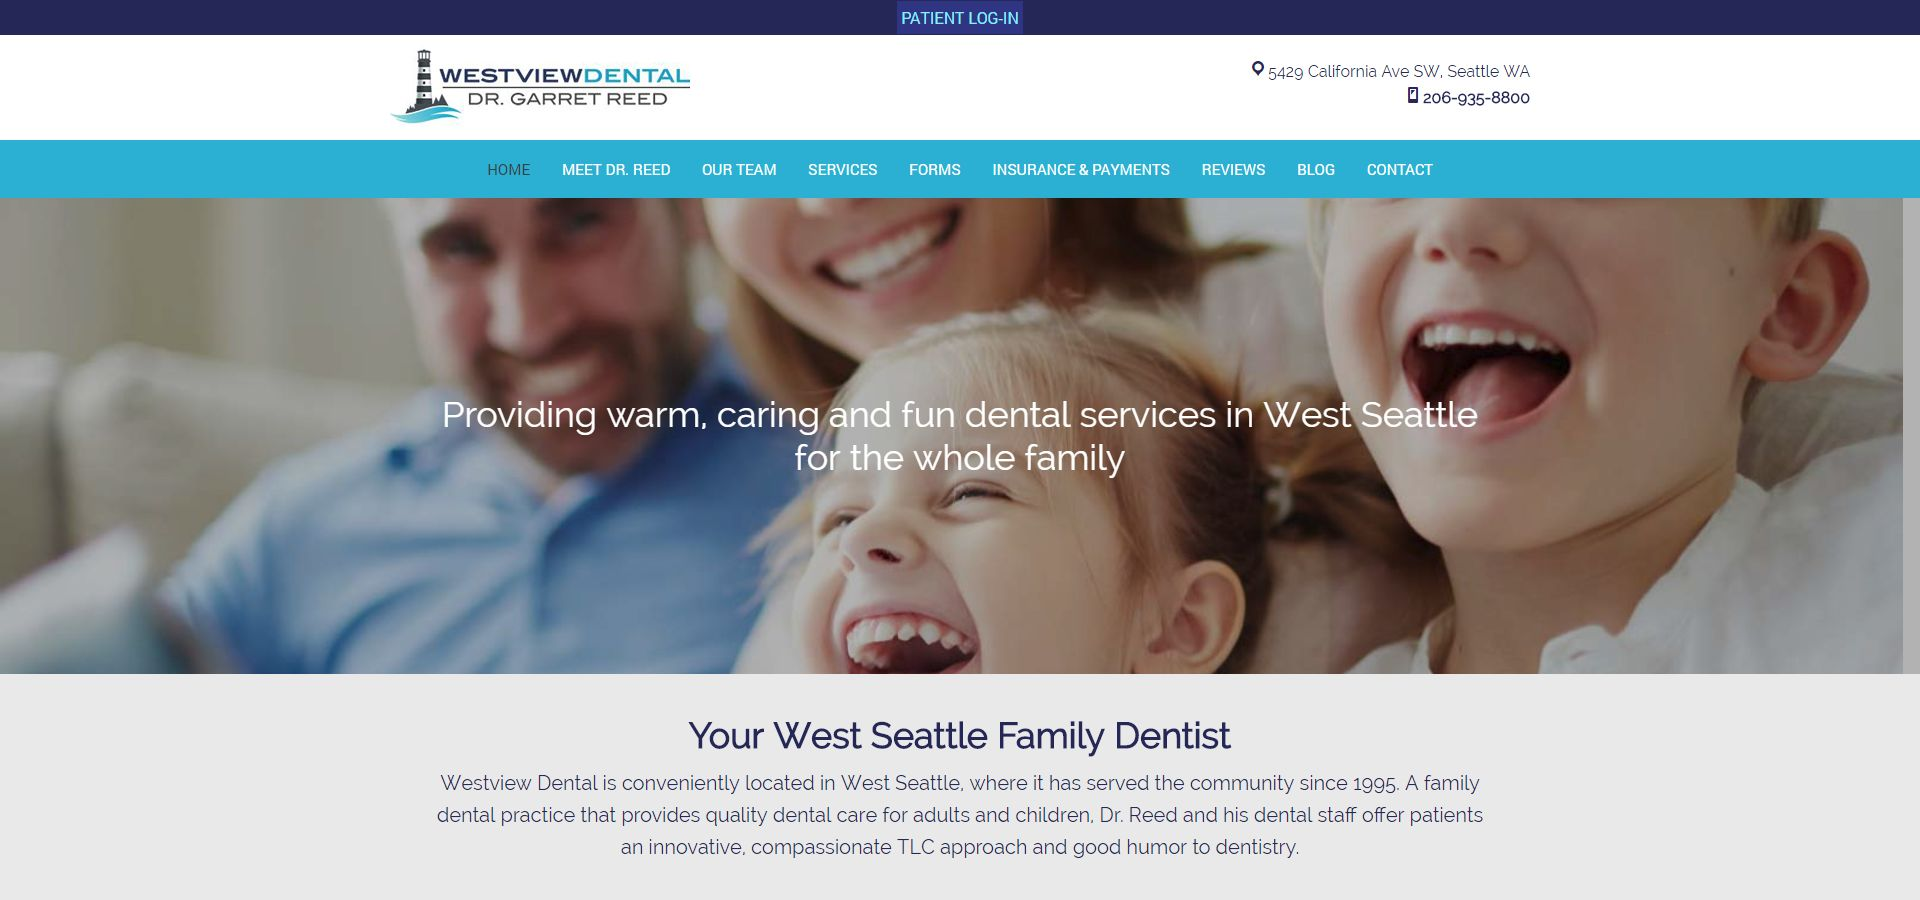 Westview Dental website by Webcami